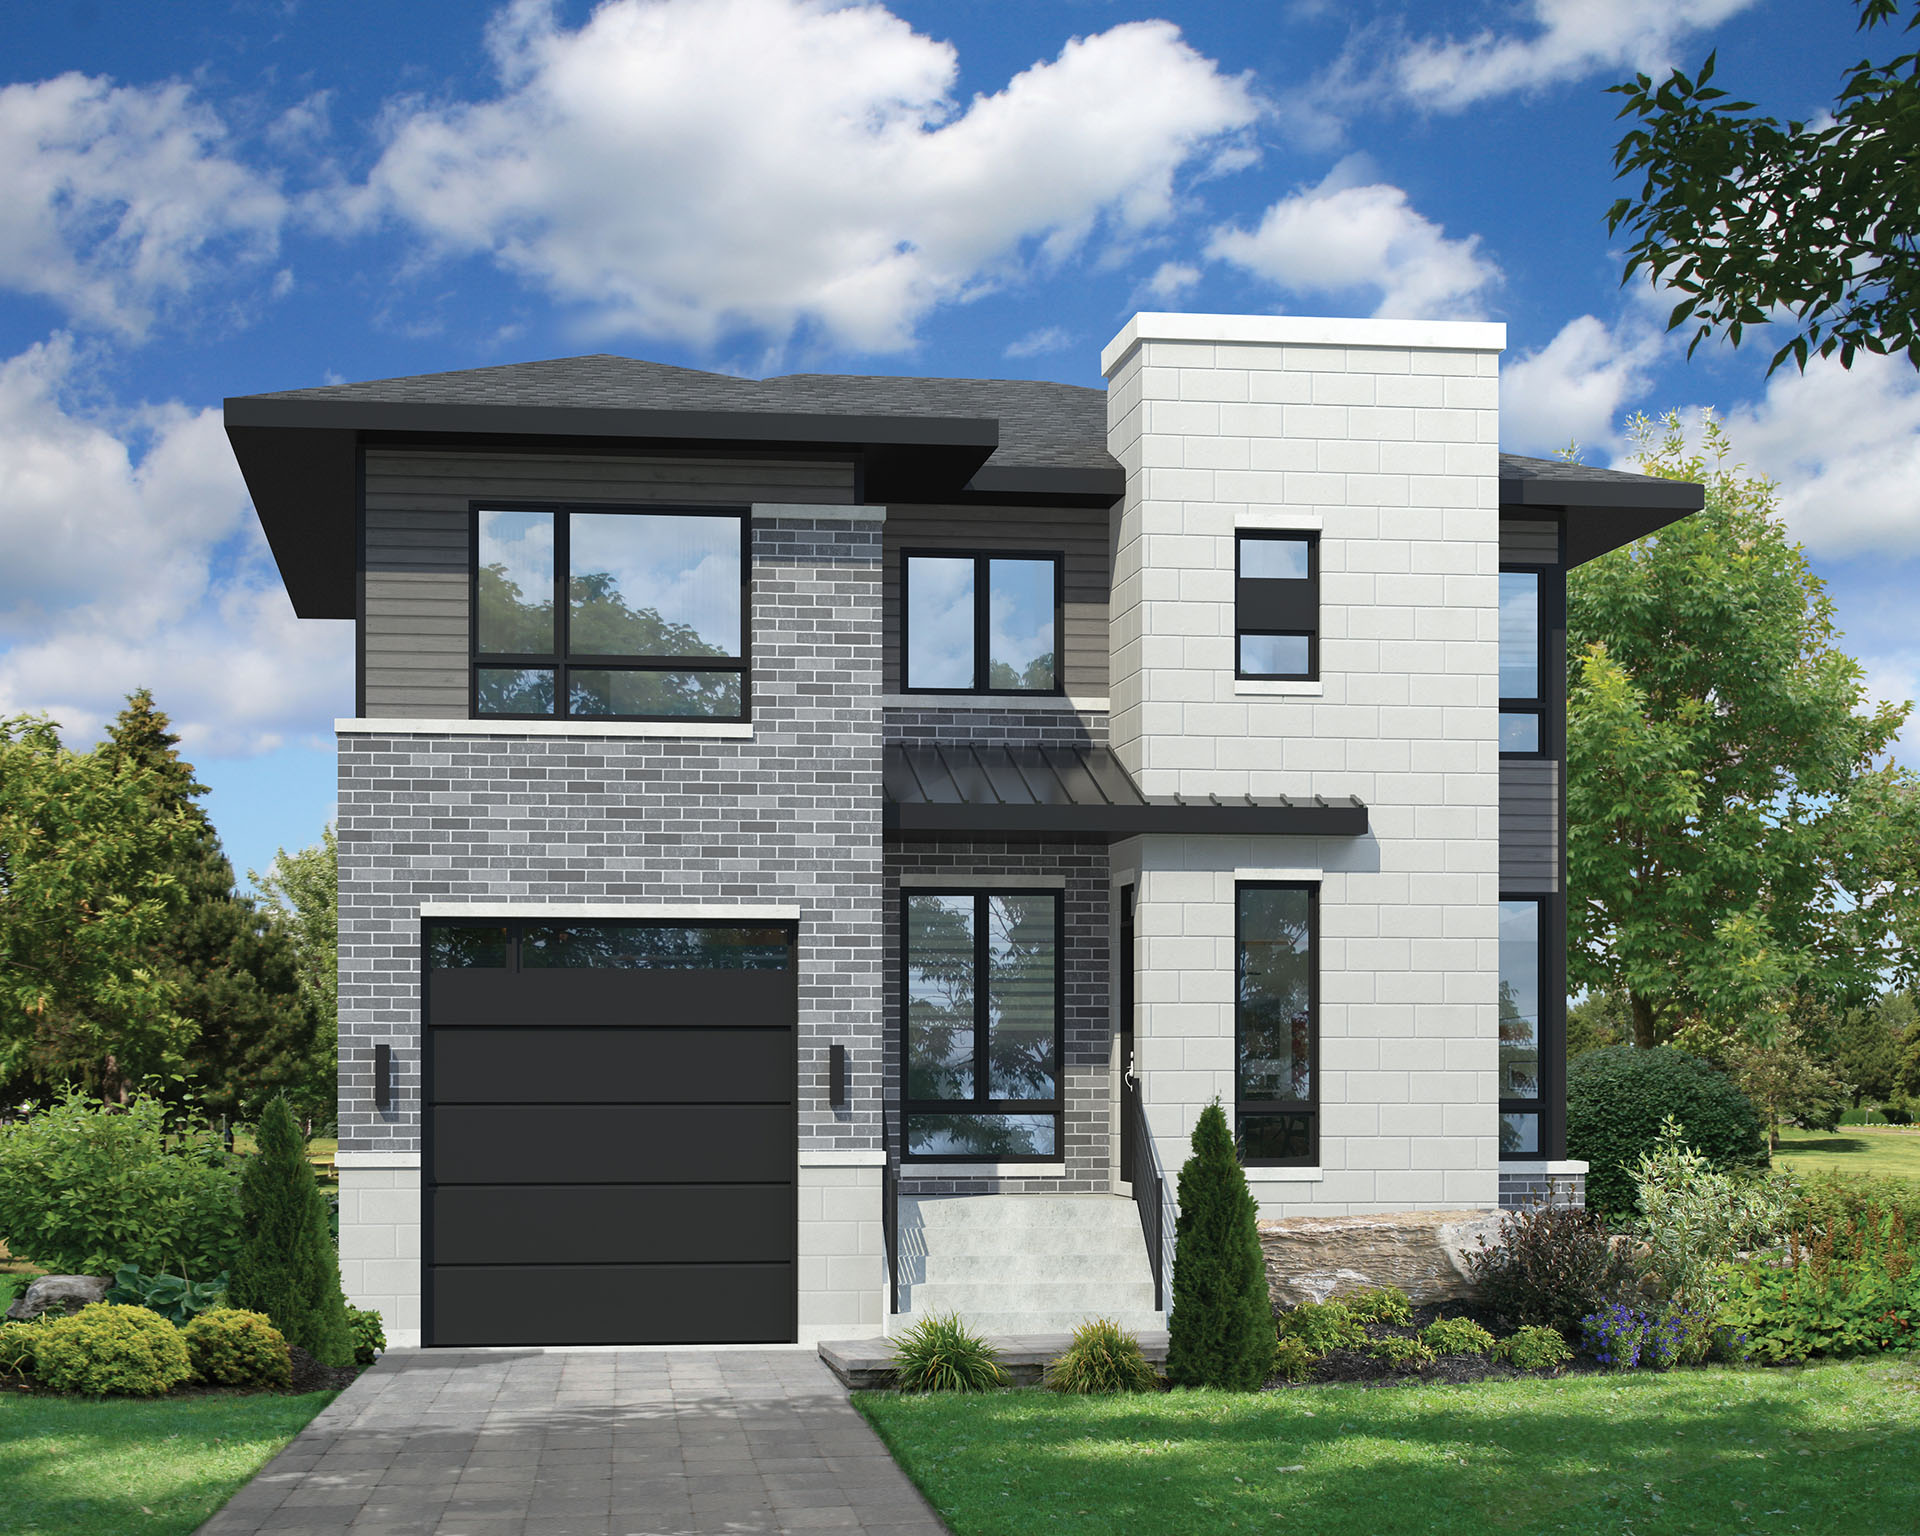 Two-story Contemporary House Plan - 80806pm 2nd Floor